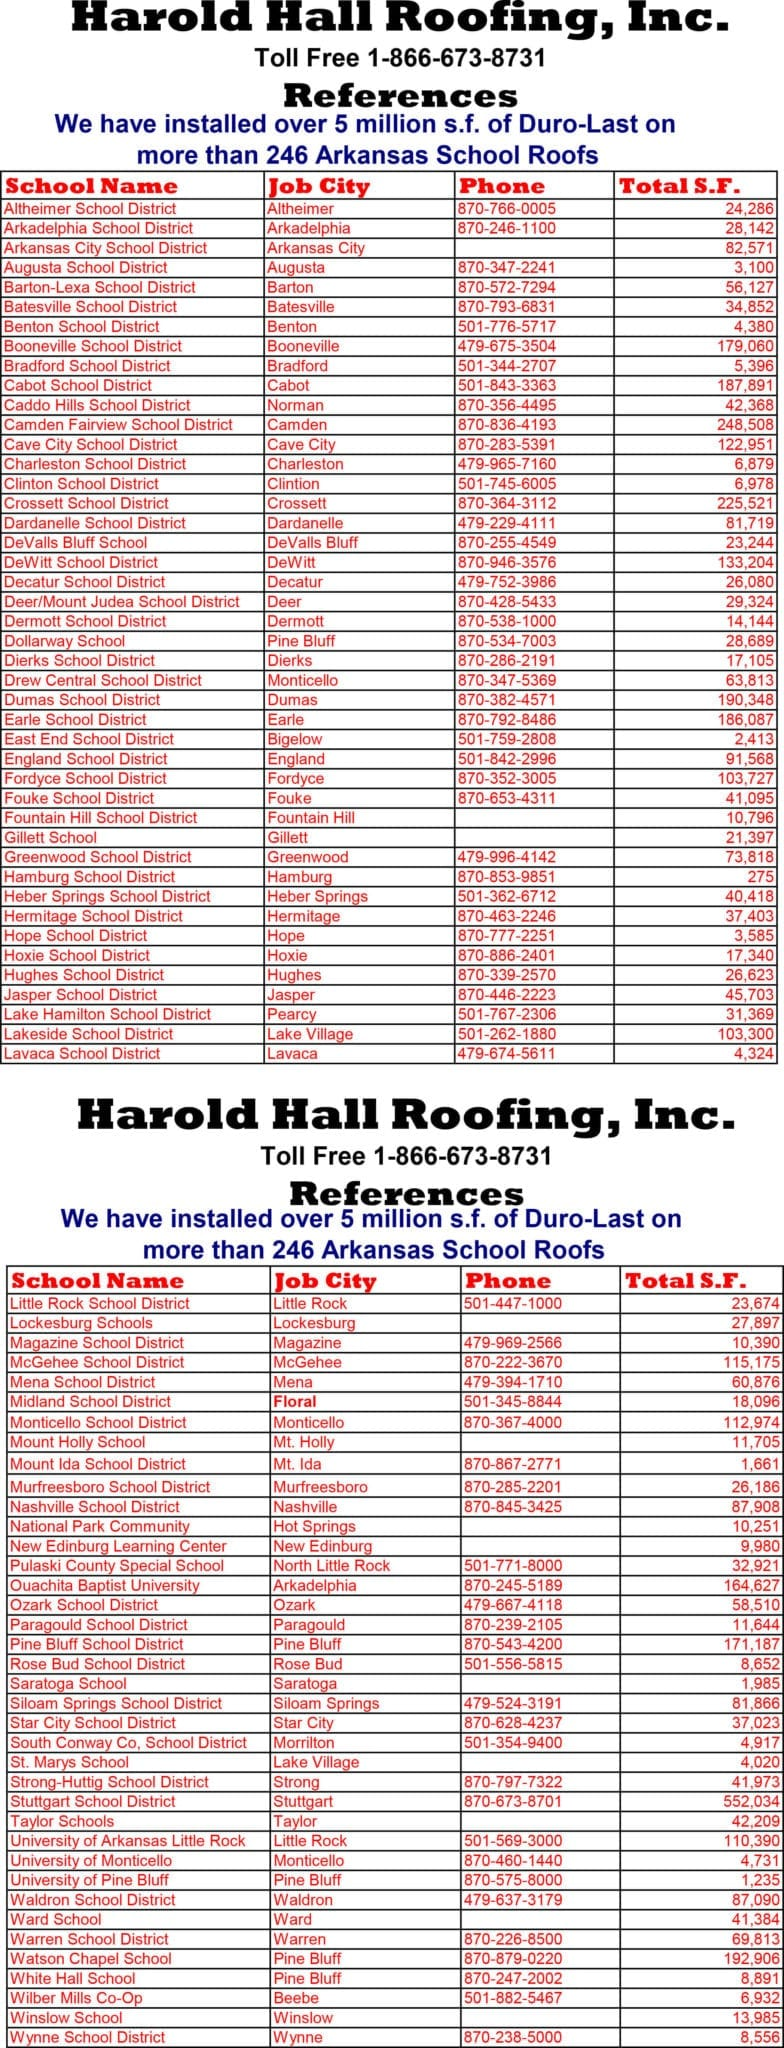 References Harold Hall Roofing